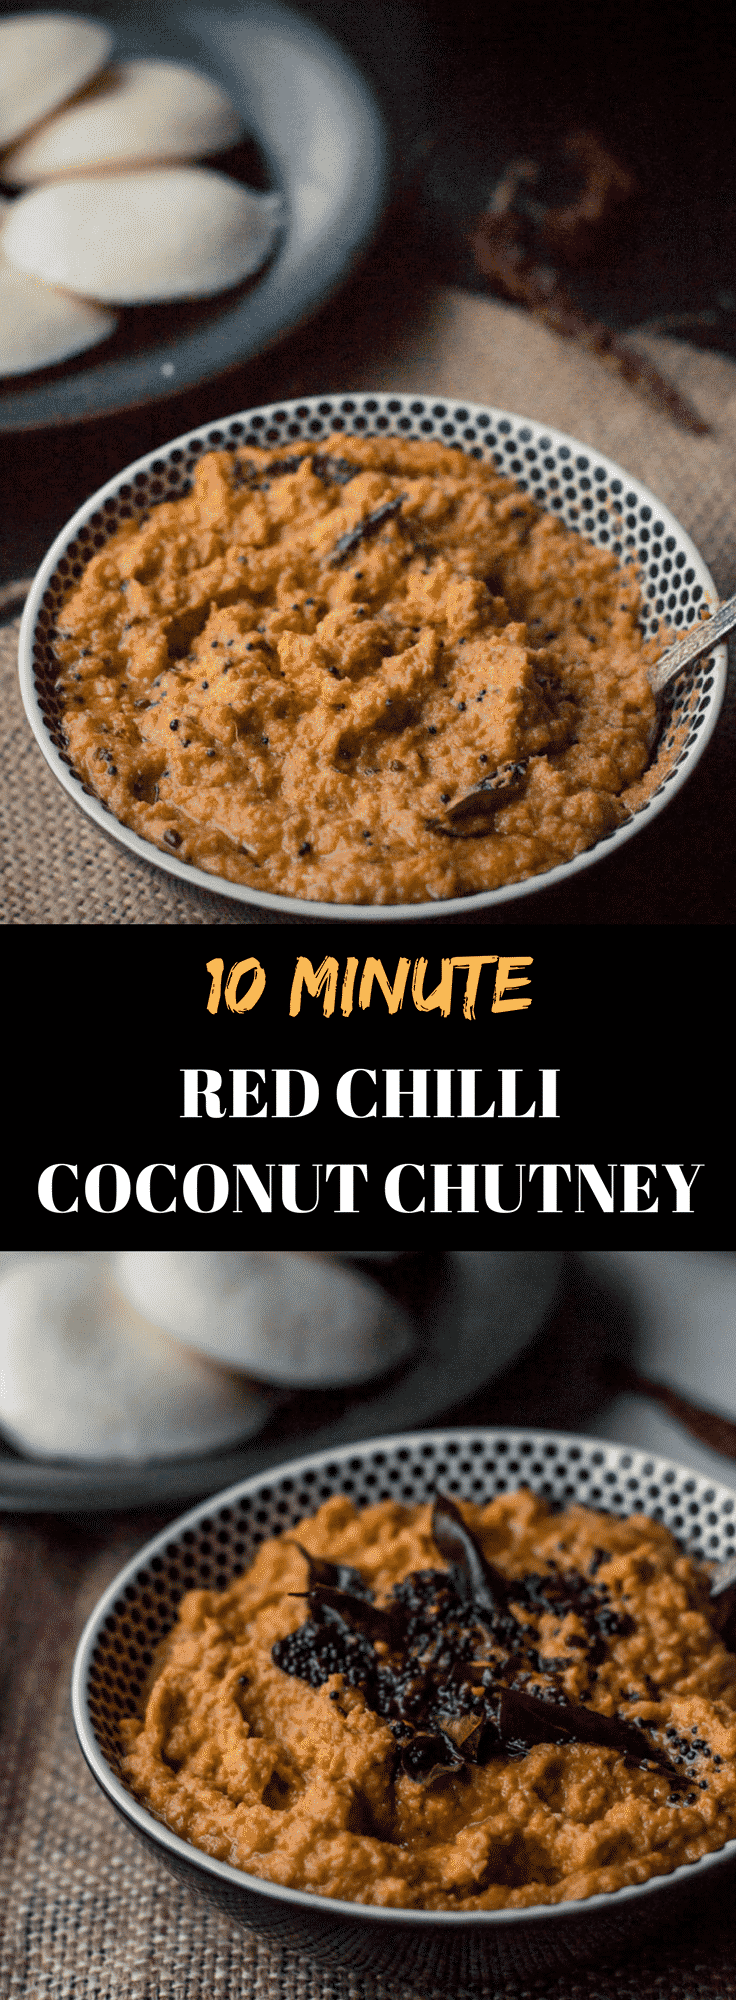 Red Chilli Coconut Chutney Recipe or Red Coconut Chutney is a sweet, spicy and tangy South Indian Style chutney that pairs well with Indian breakfasts such as dosa and idli.